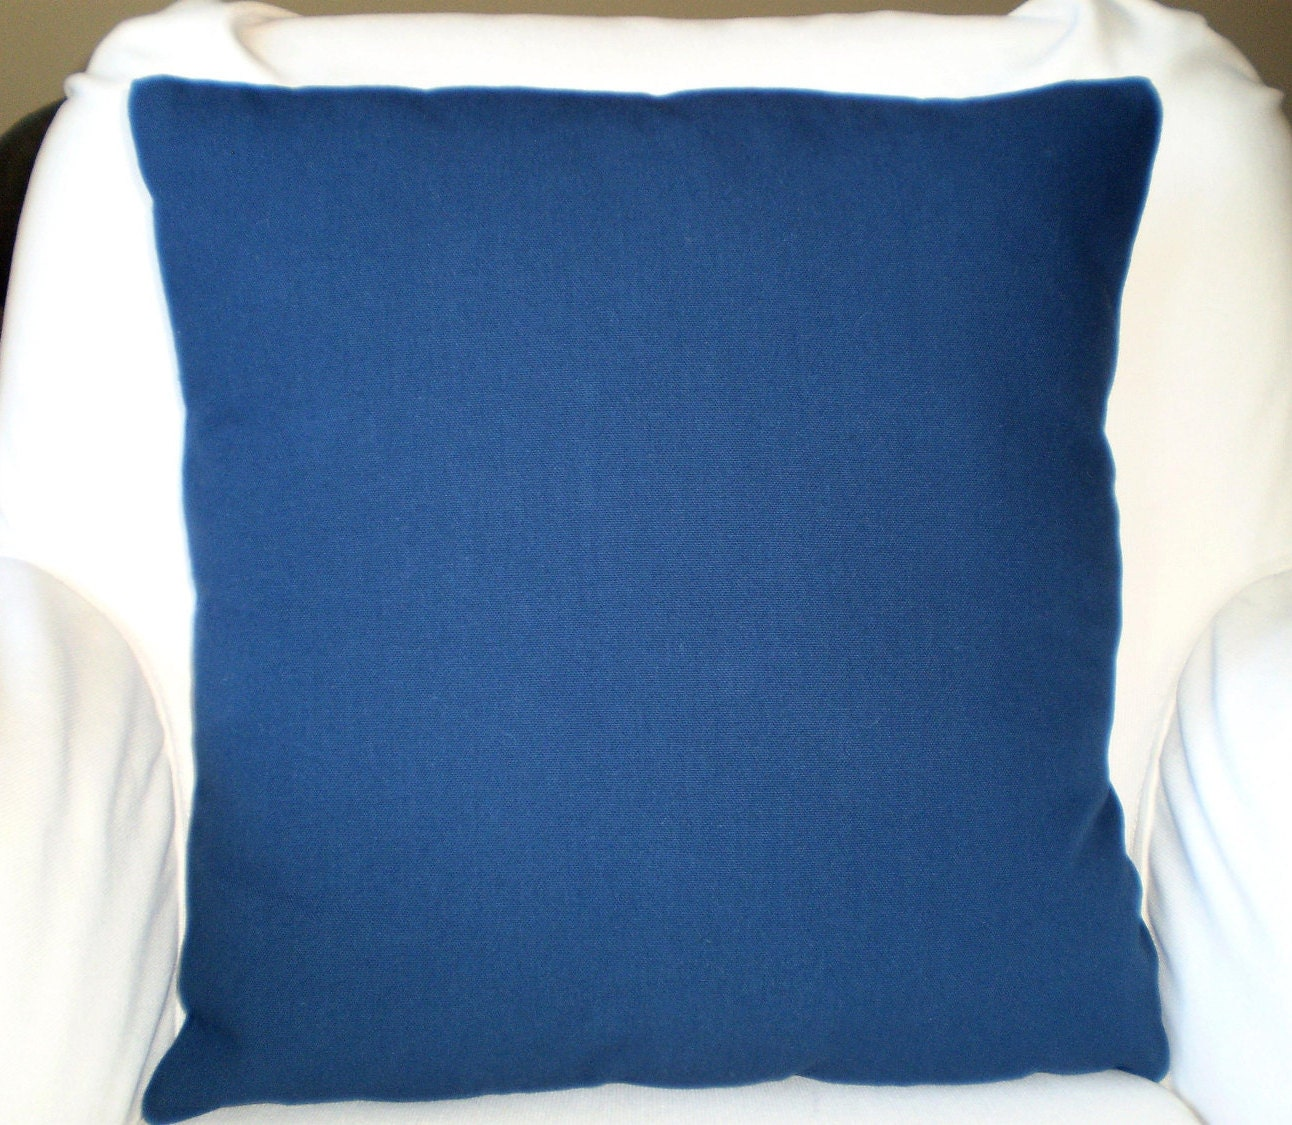 Navy Blue Decorative Pillow Covers : Solid Navy Blue Pillow Cover Decorative by PillowCushionCovers